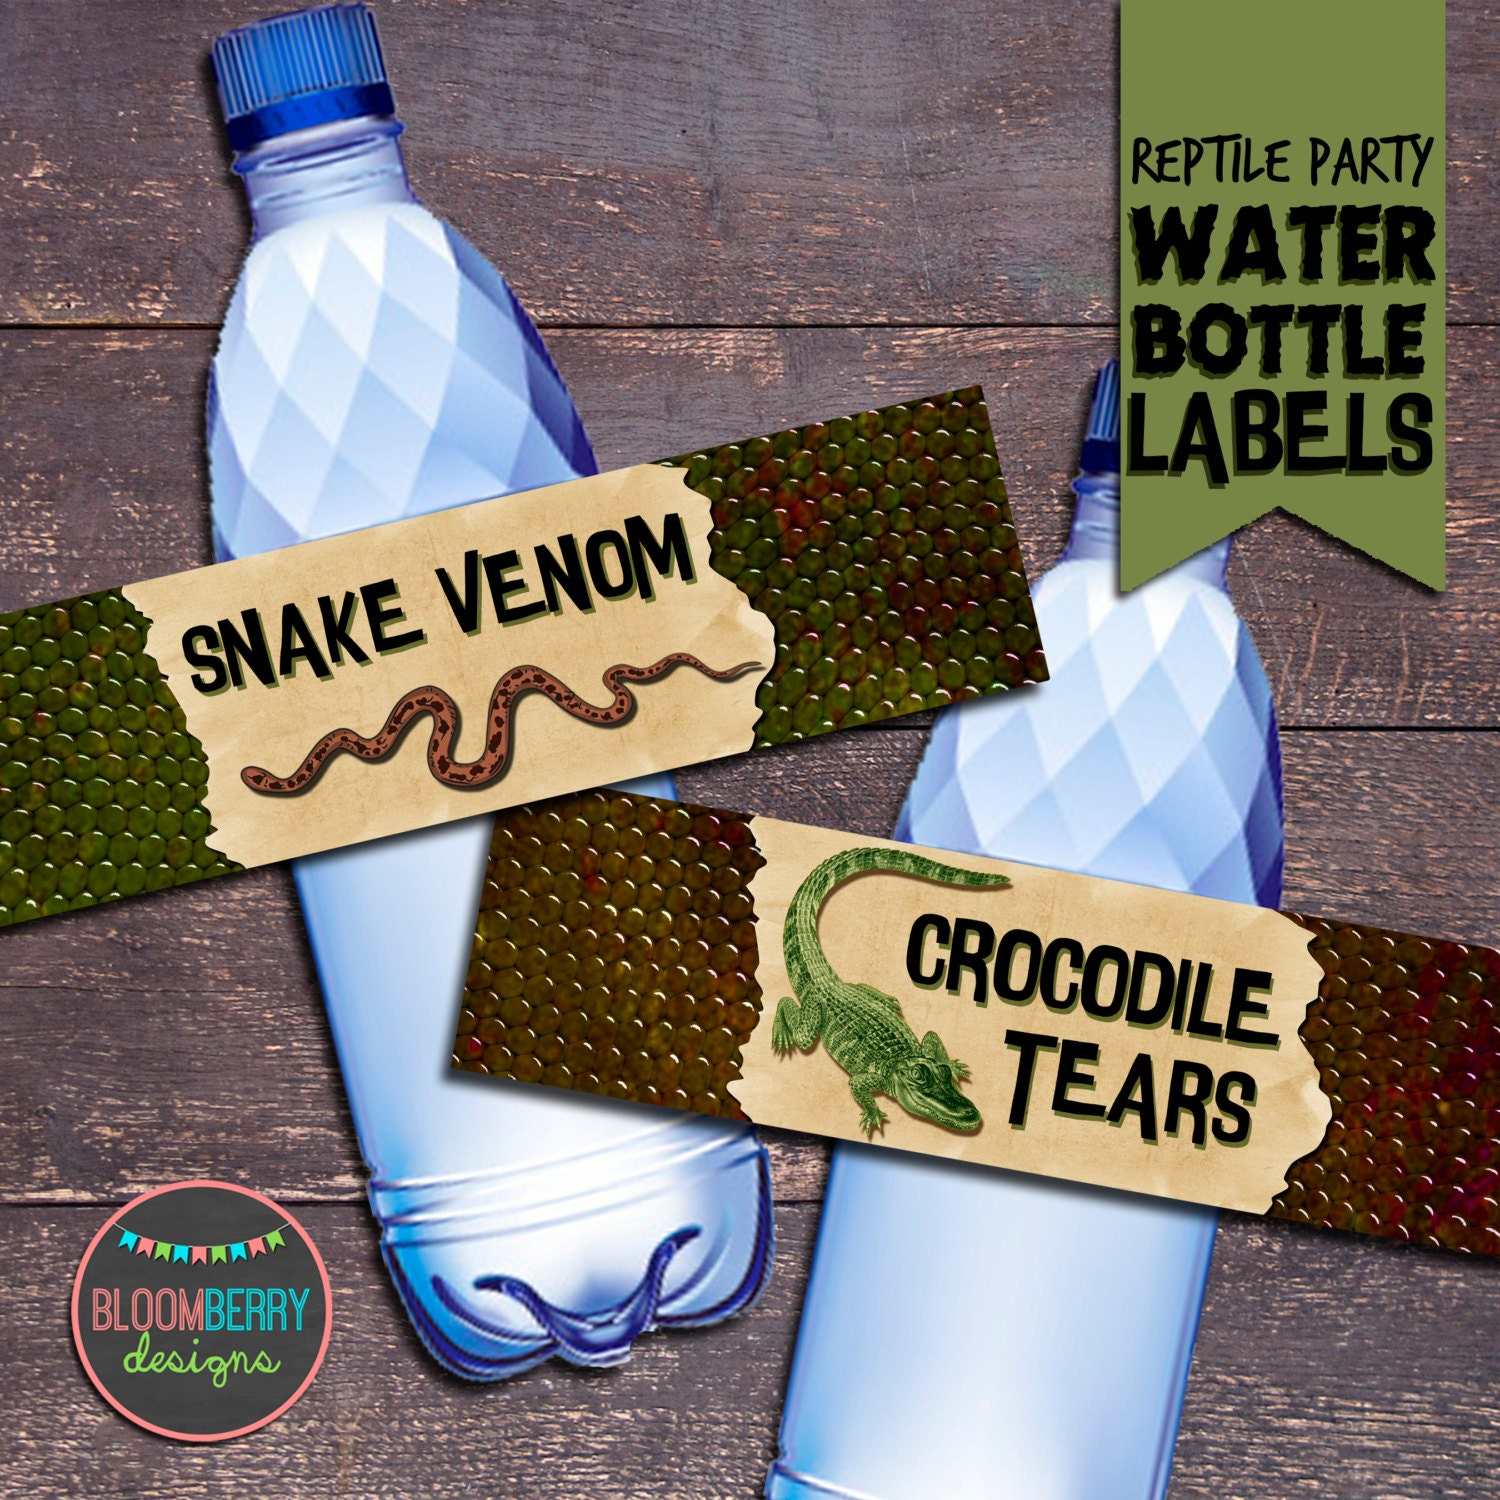 Reptile Party Reptile Party Water Bottle Labels Reptile